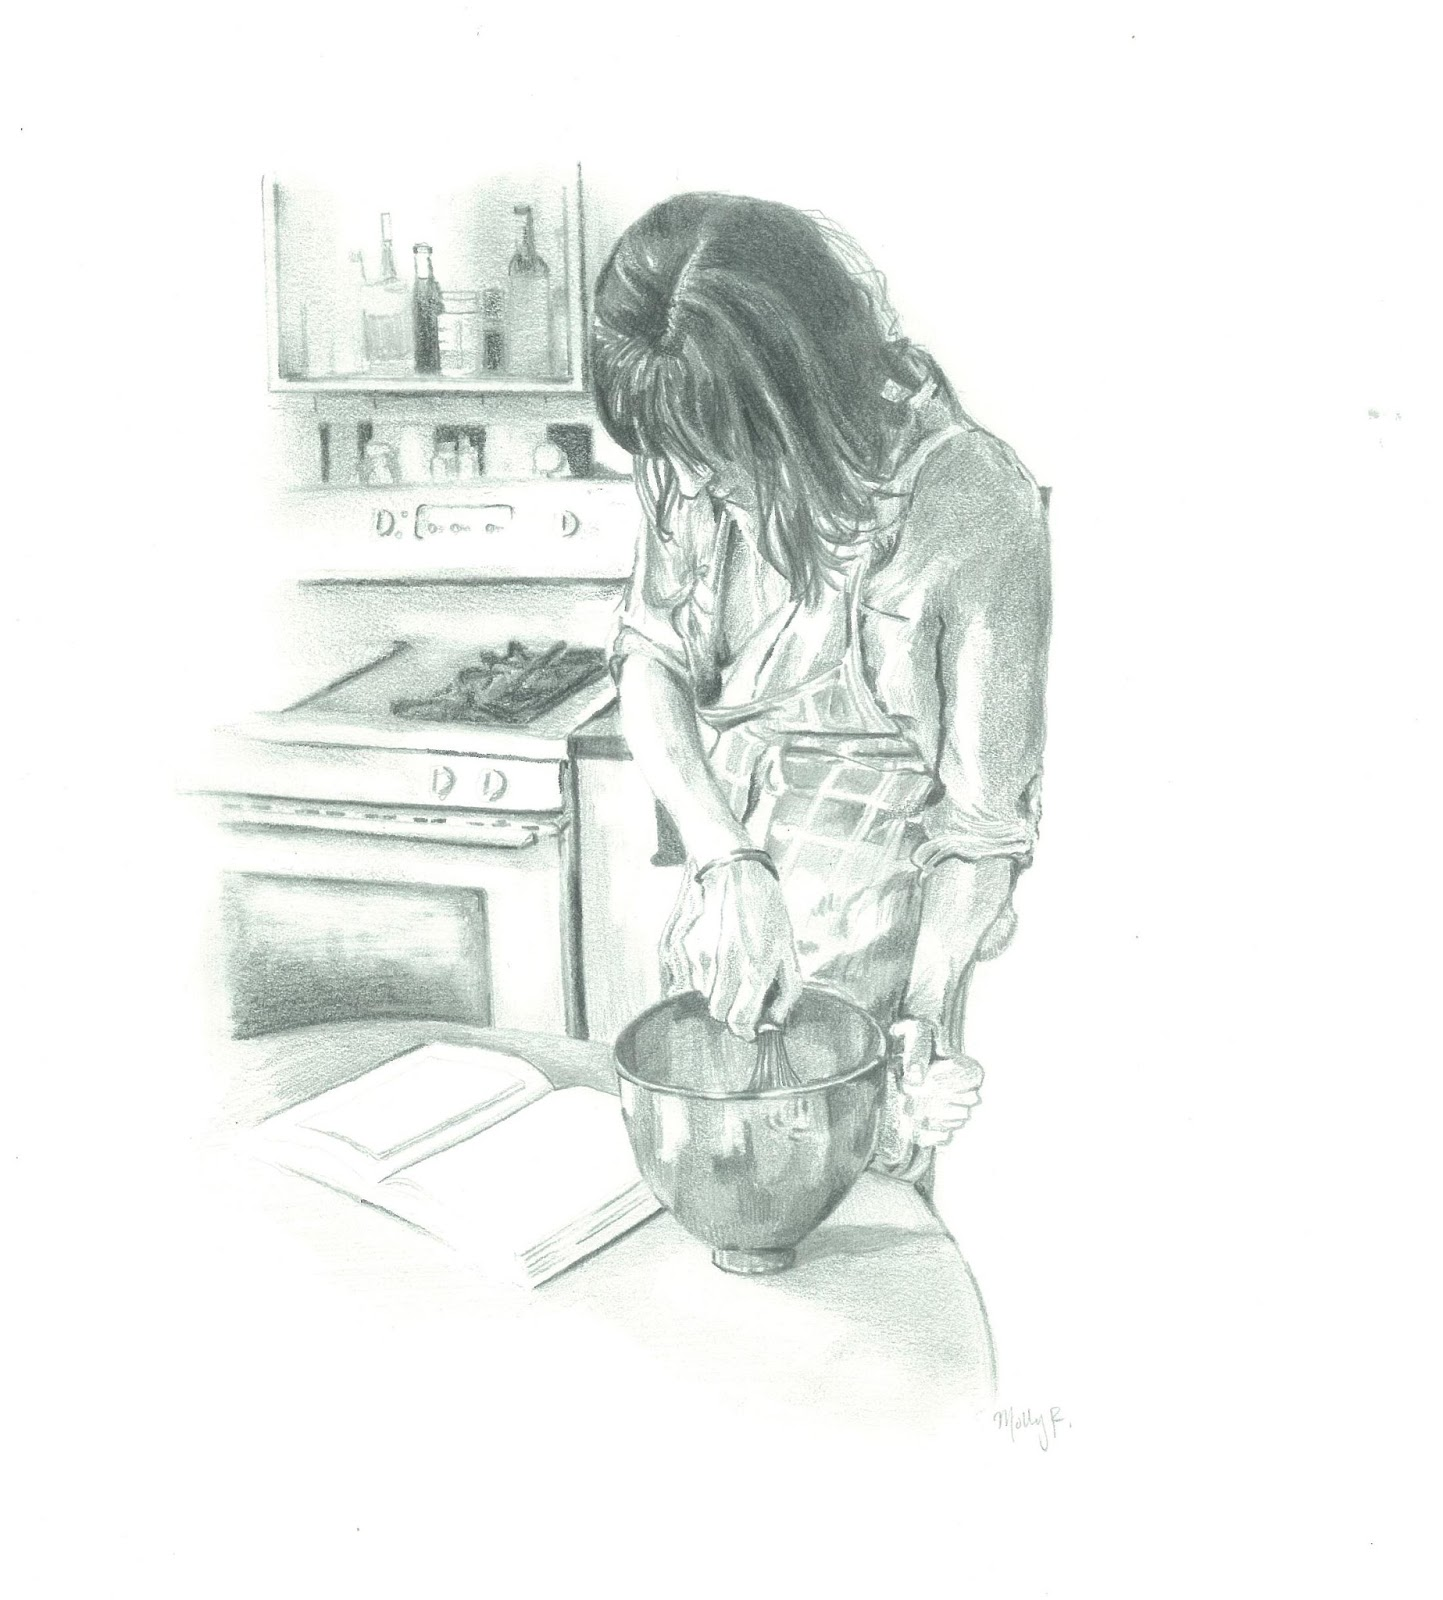 Nothing In The House: Molly Reeder's Kitchen Drawings